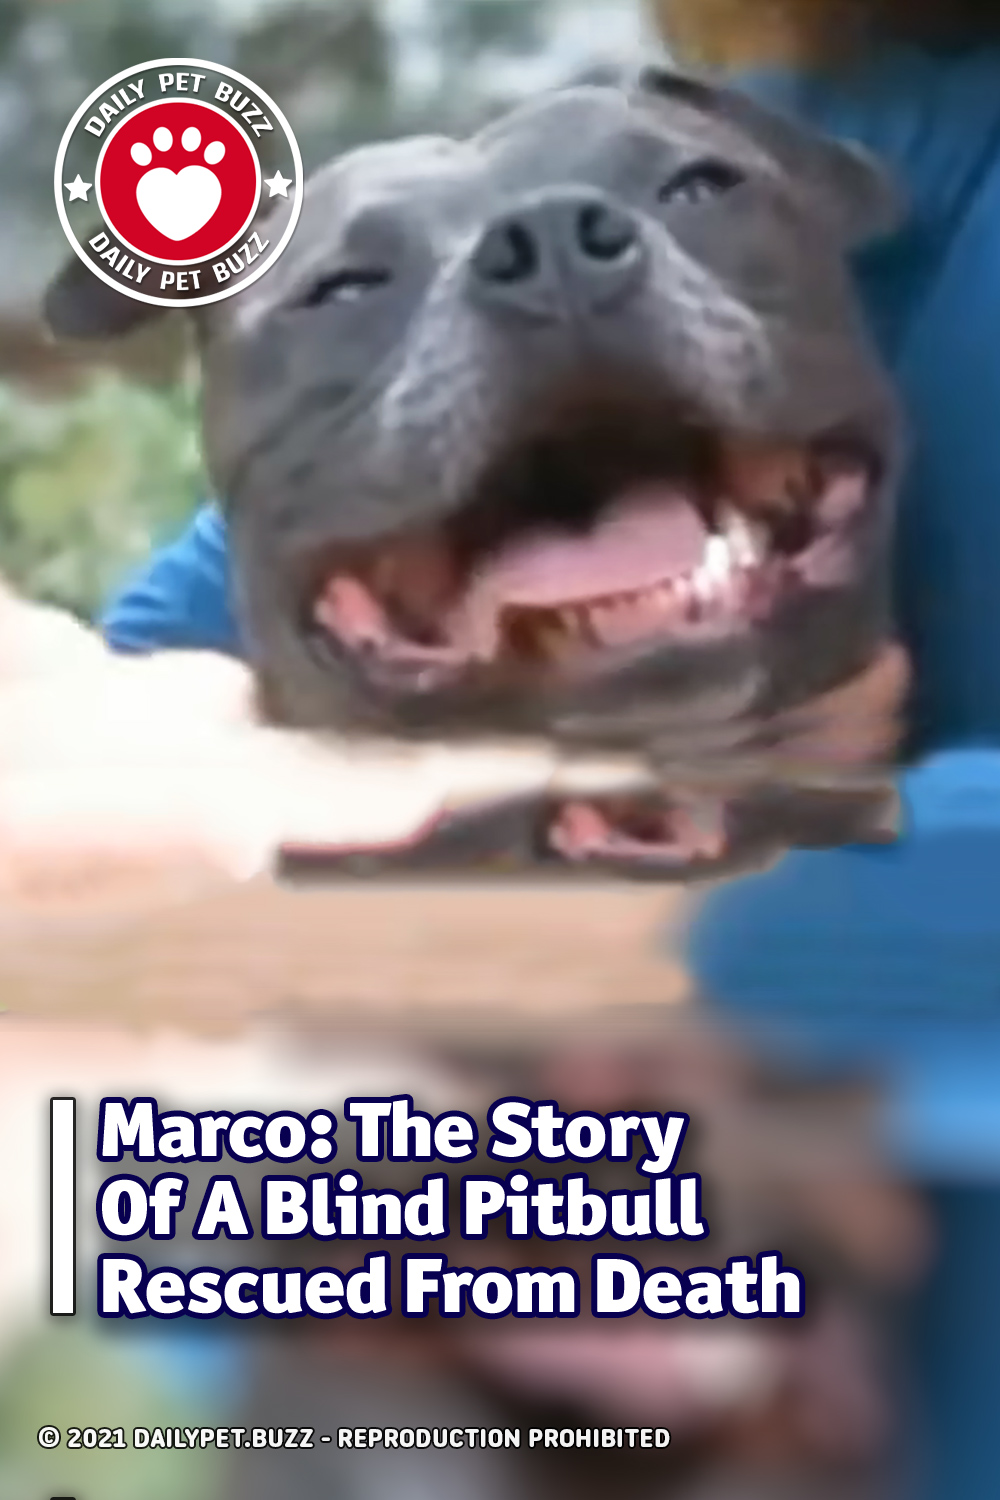 Marco: The Story Of A Blind Pitbull Rescued From Death